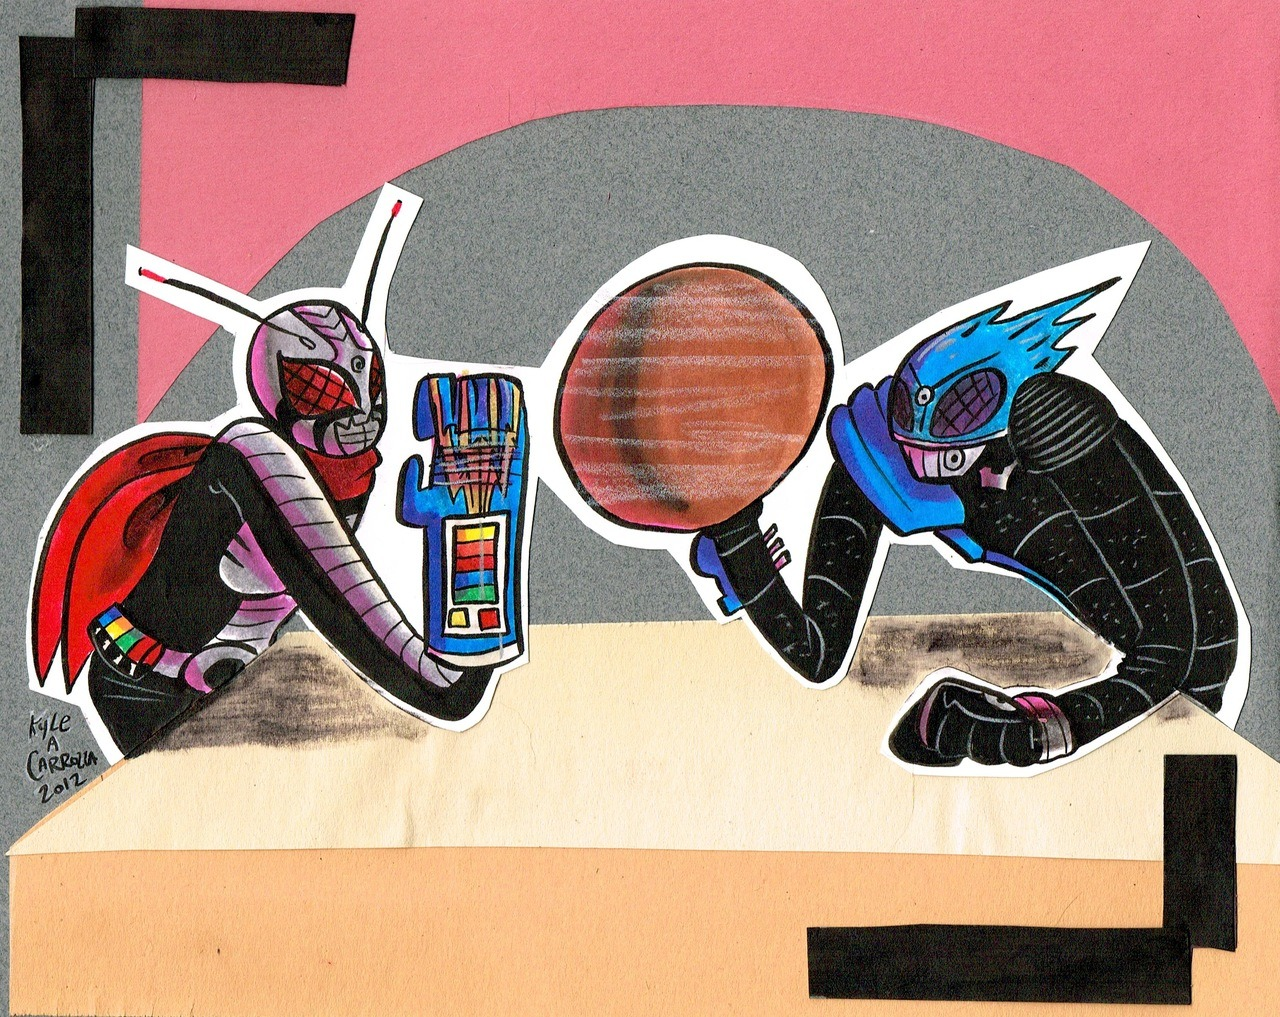 Kamen Rider Super-1 and Kamen Rider Meteor captured in the moment just before they arm wrestle. (Another potential Q-Pop piece… still deciding…)